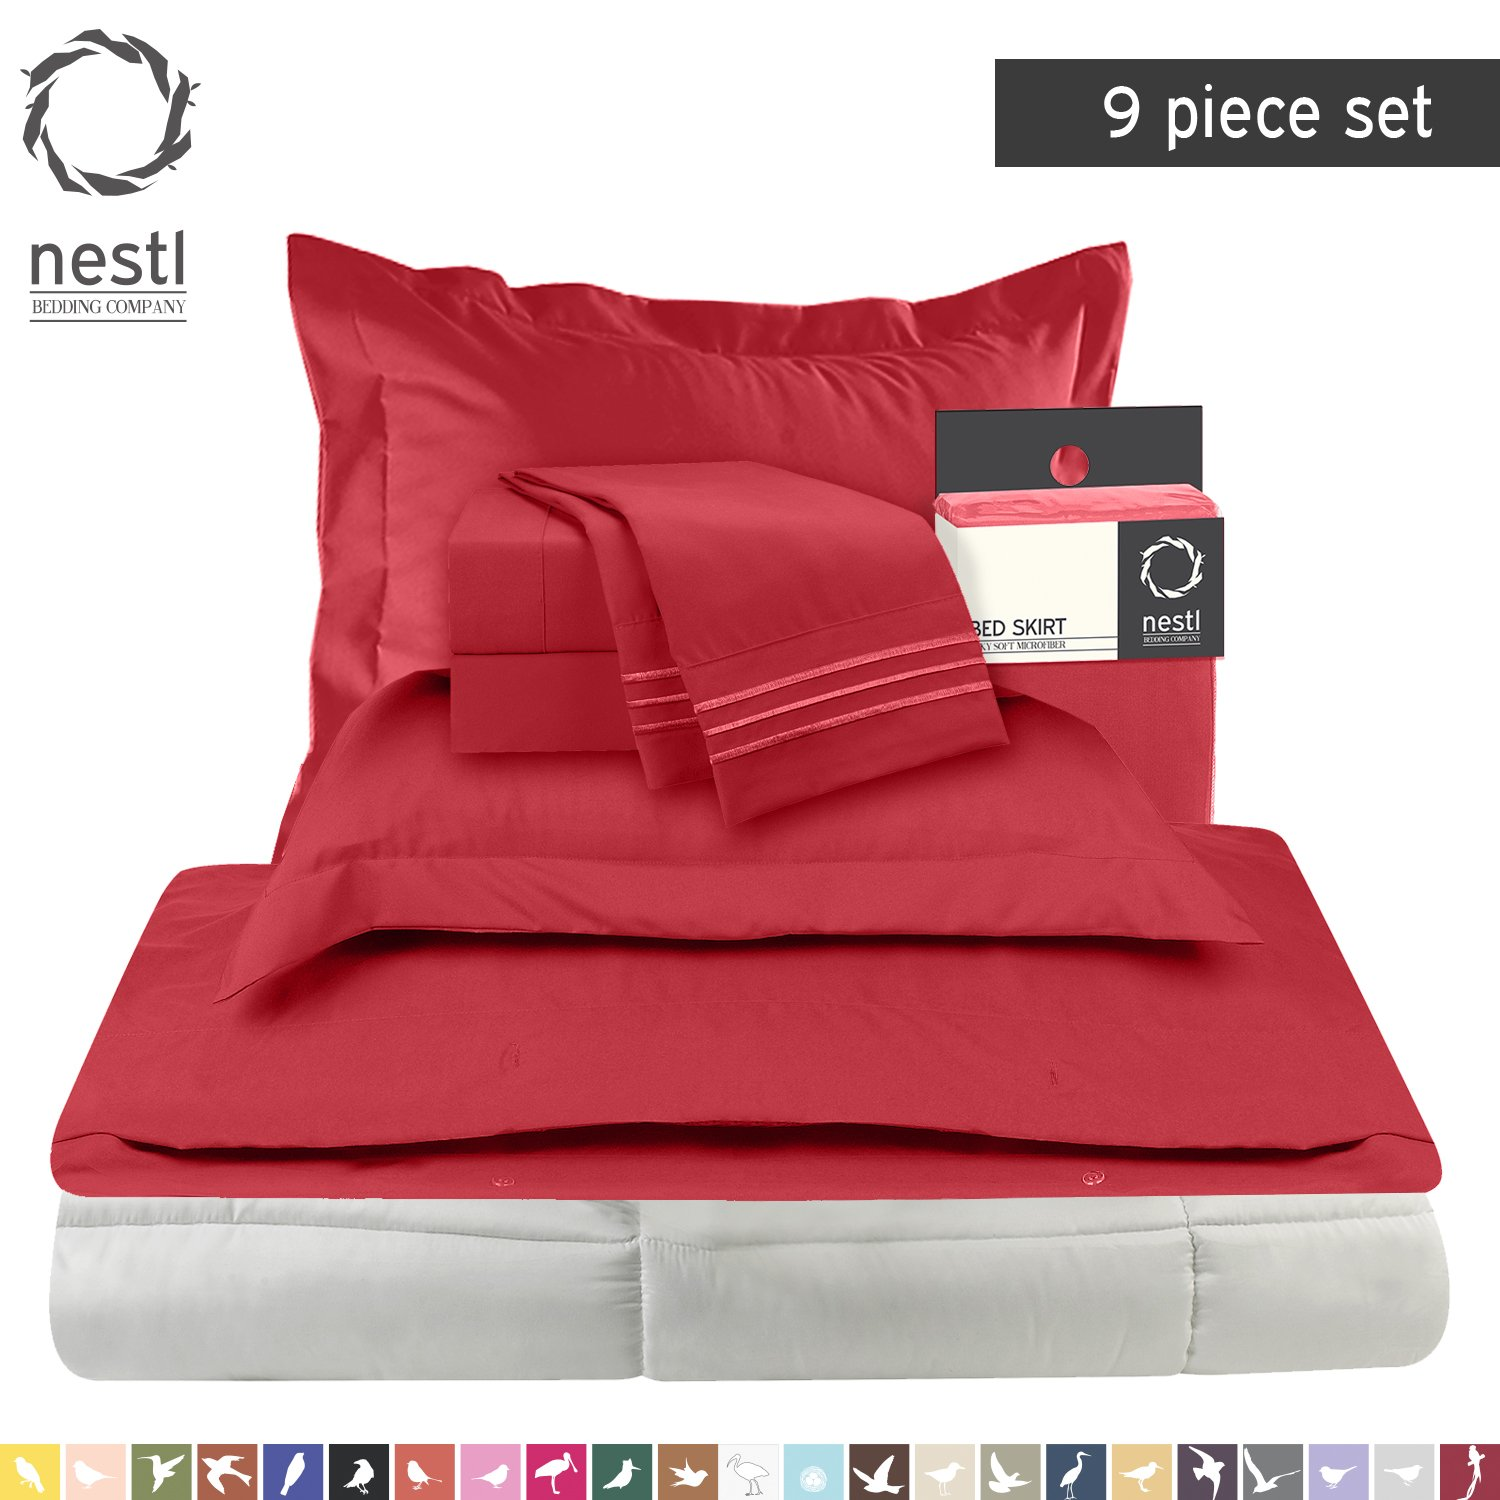 Bed-In-A-Bag 9 Piece Complete Bed Sheet Set